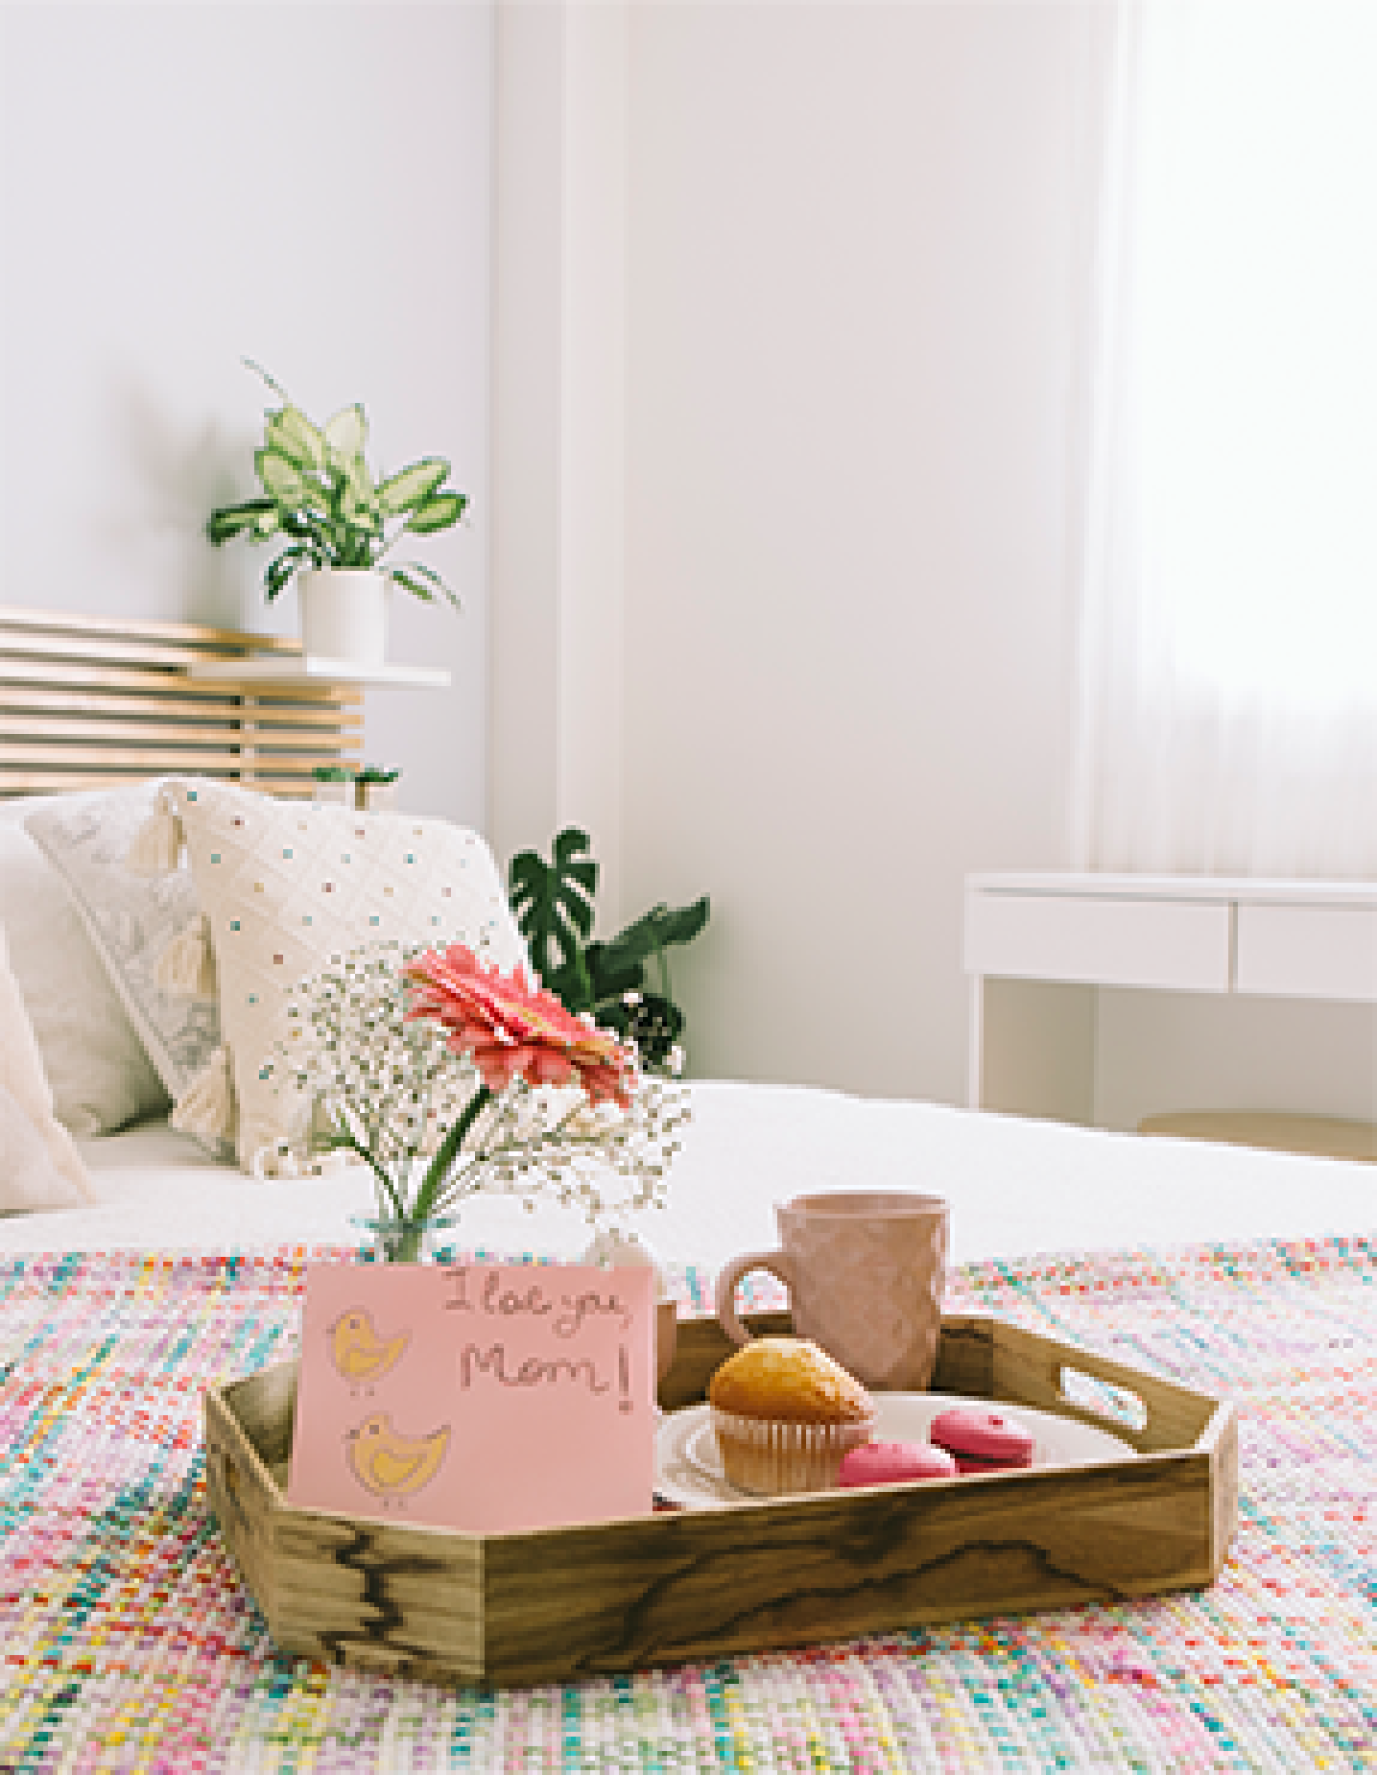 Mothers day food traditions - breakfast in bed